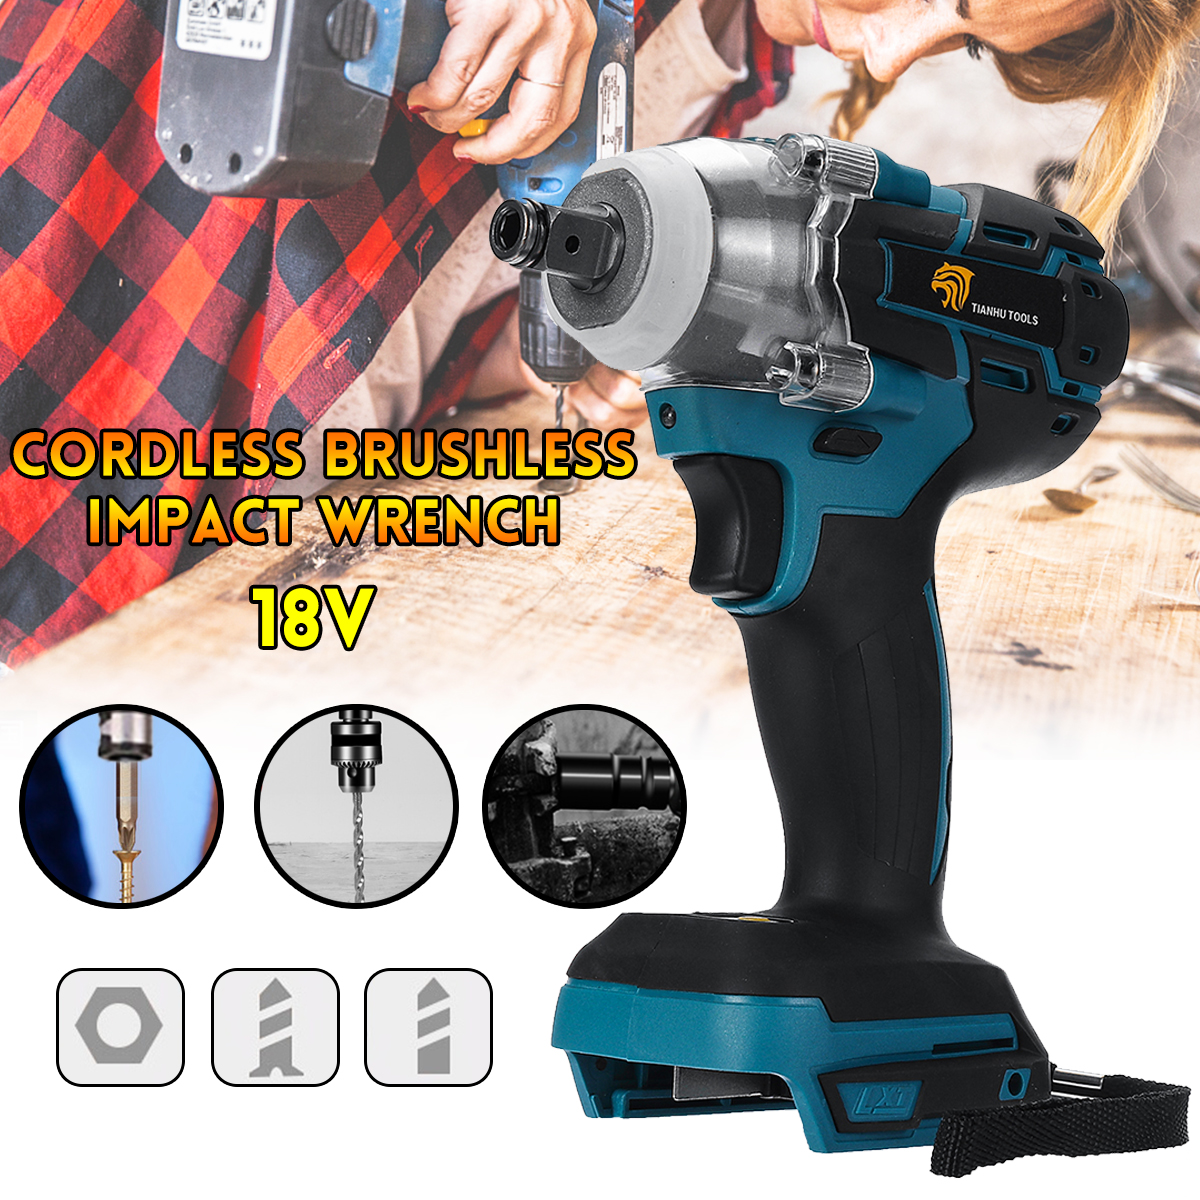 18V Impact Wrench Brushless Cordless Electric Wrench Power Tool 520N.m Torque Rechargeable For Makita Battery DTW285Z|Electric Wrenches|   - AliExpress